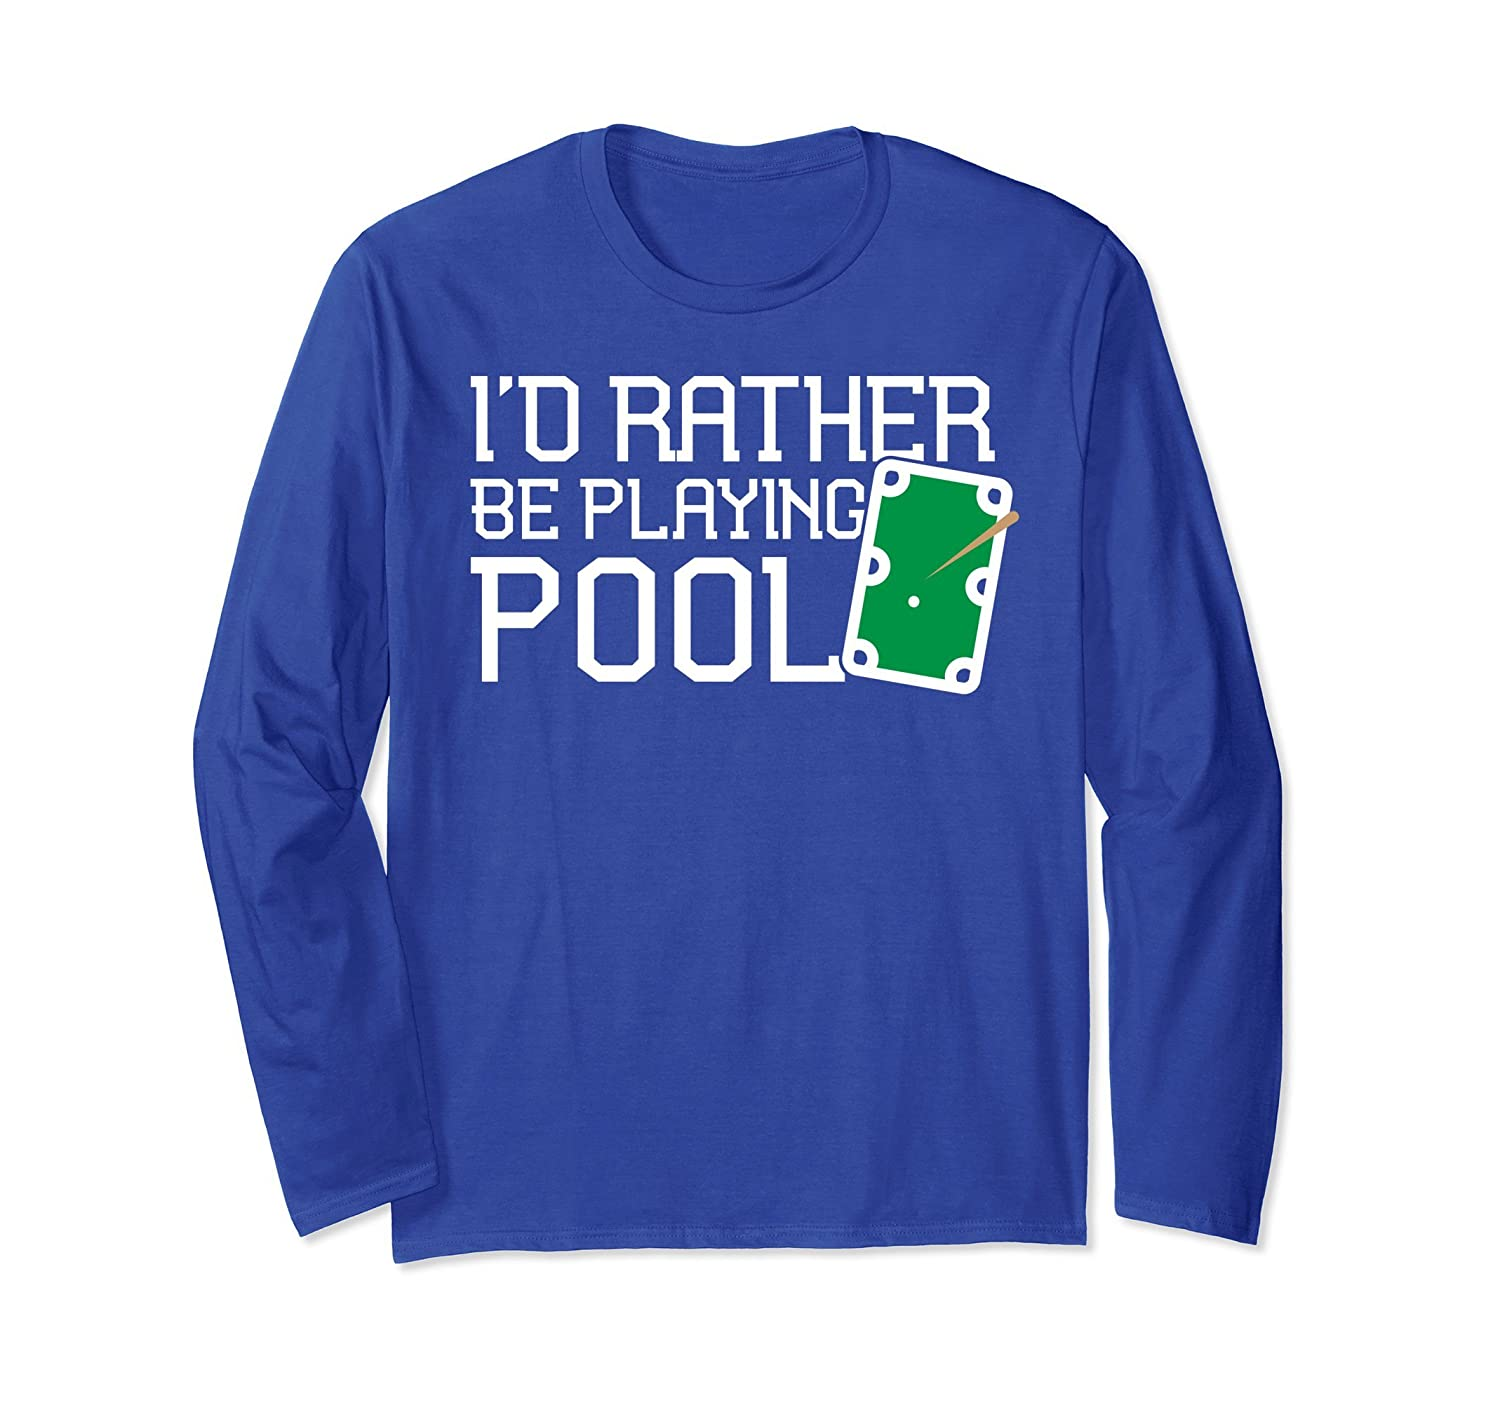 Snooker Kids Children/'s Kid/'s T-Shirt Cue Sport Player Pool Funny Cool Gift